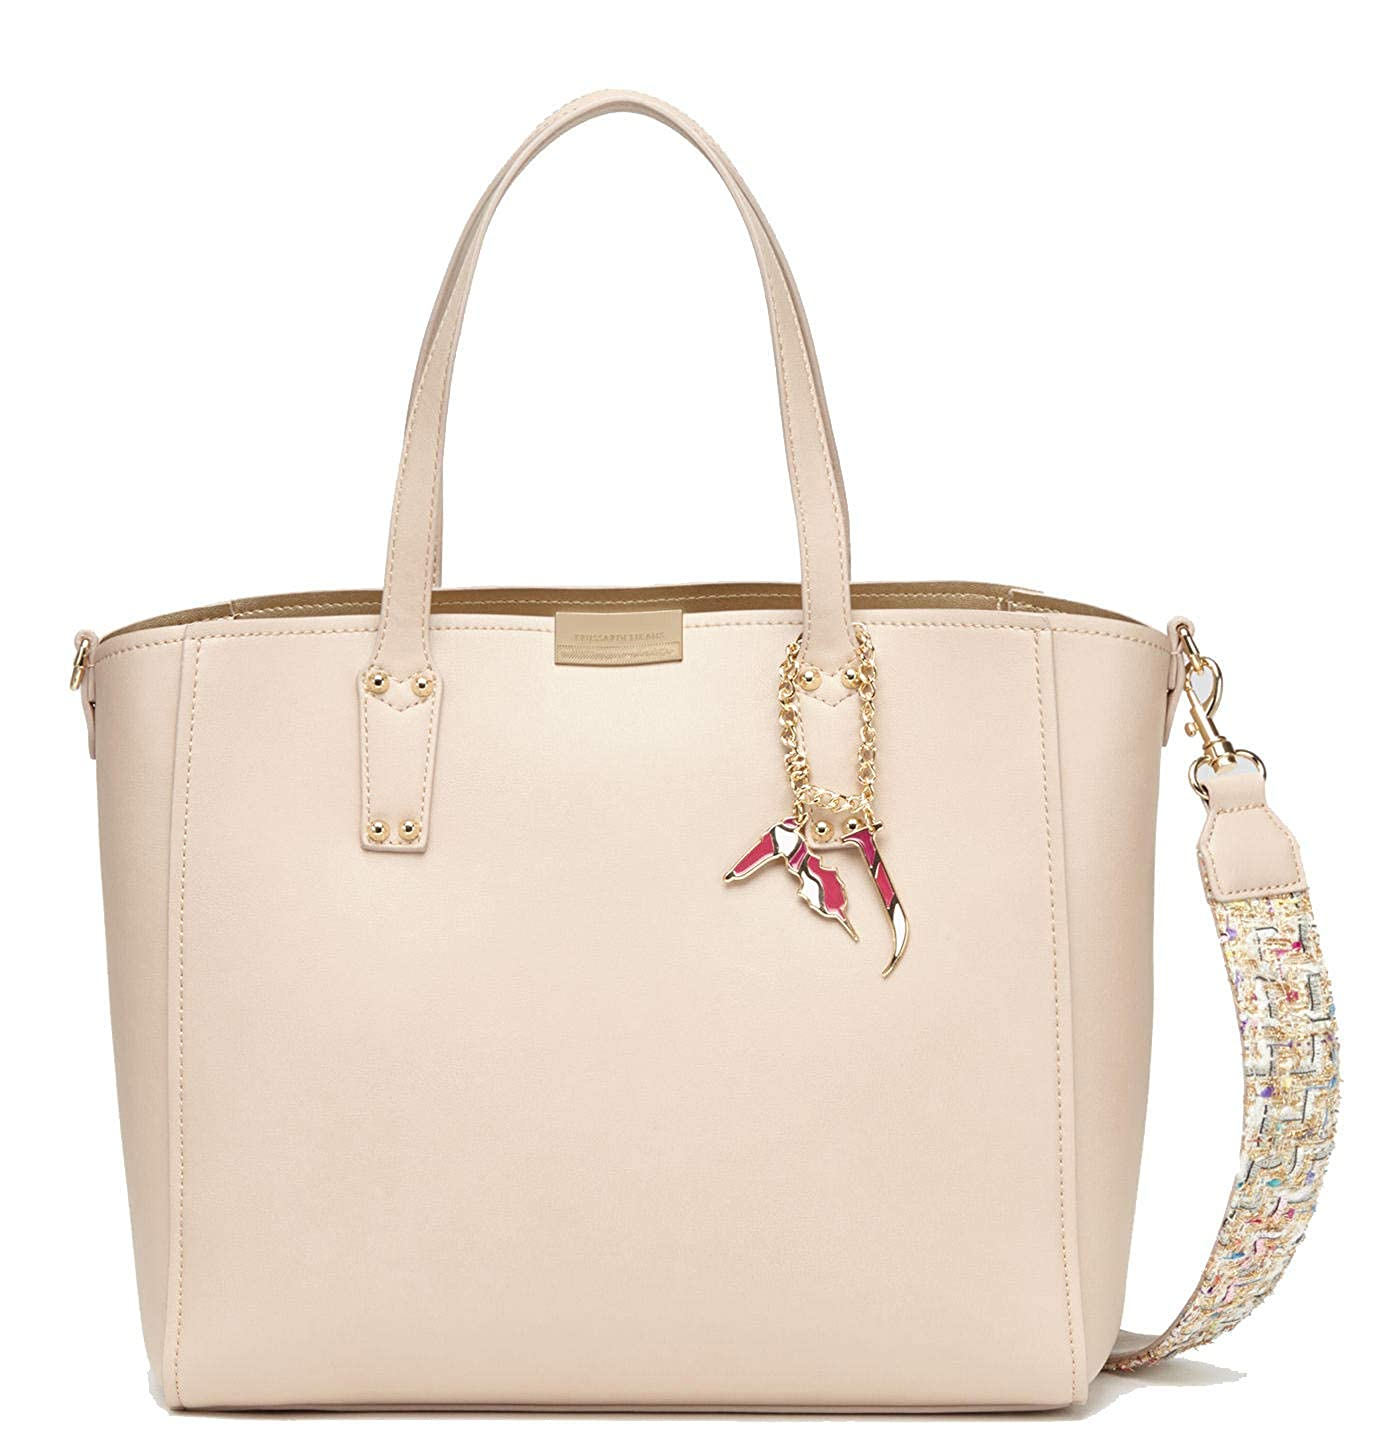 37209eb23a Borsa Donna Shopping | Trussardi Jeans Rosemary Smooth |  75B0036299999-Nude: Amazon.it: Scarpe e borse